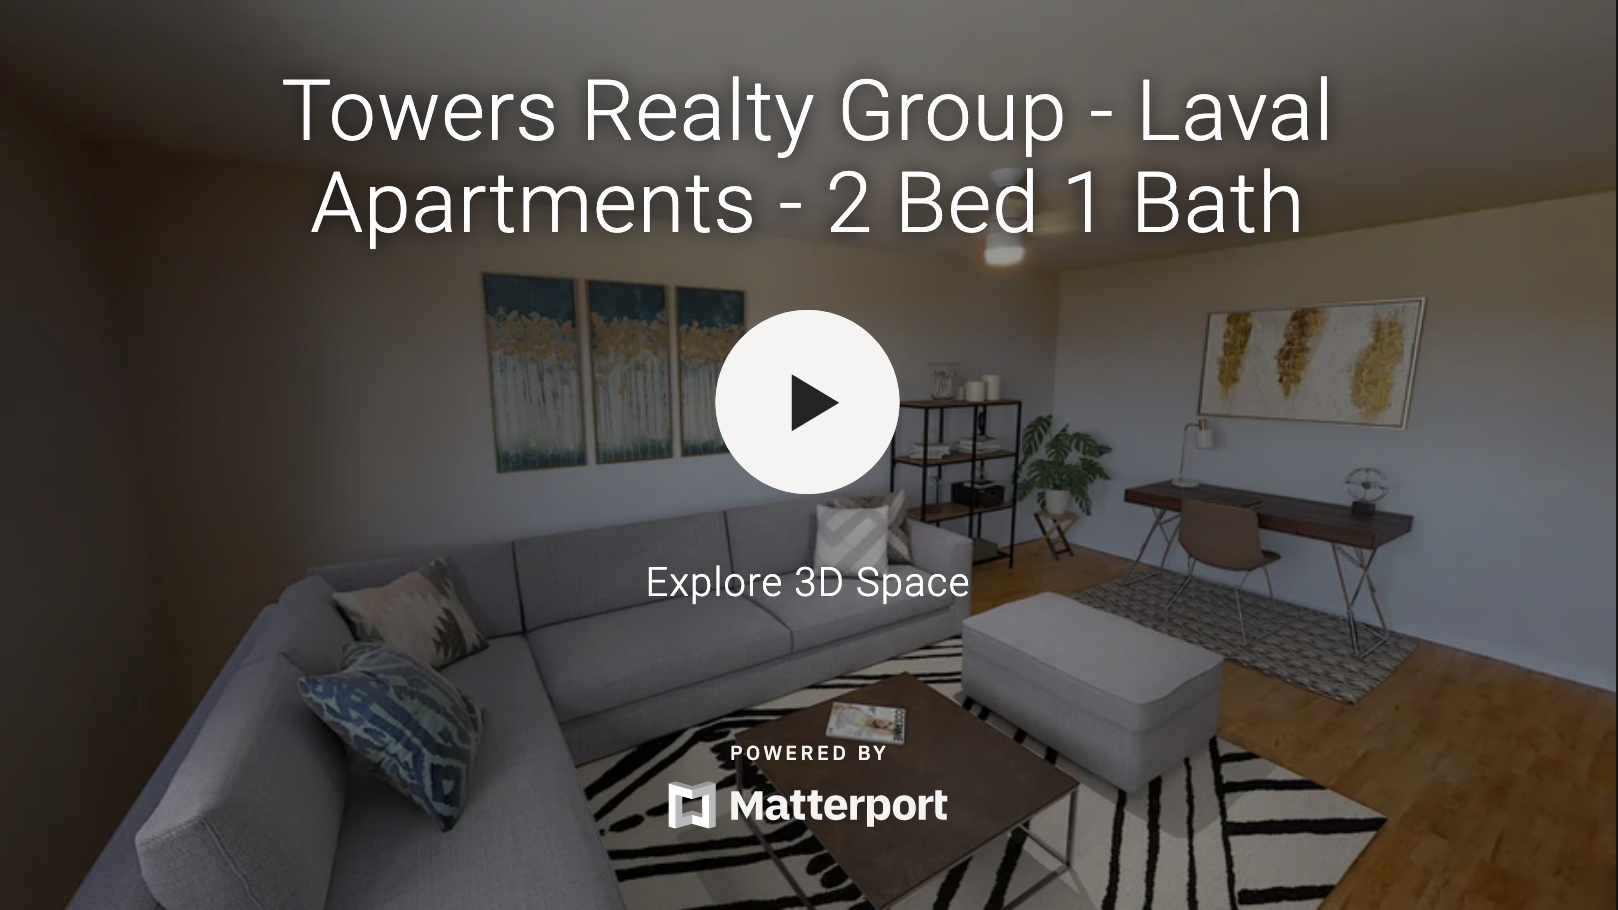 Towers Realty Group - Laval Apartments - 2 Bedroom 3D tour